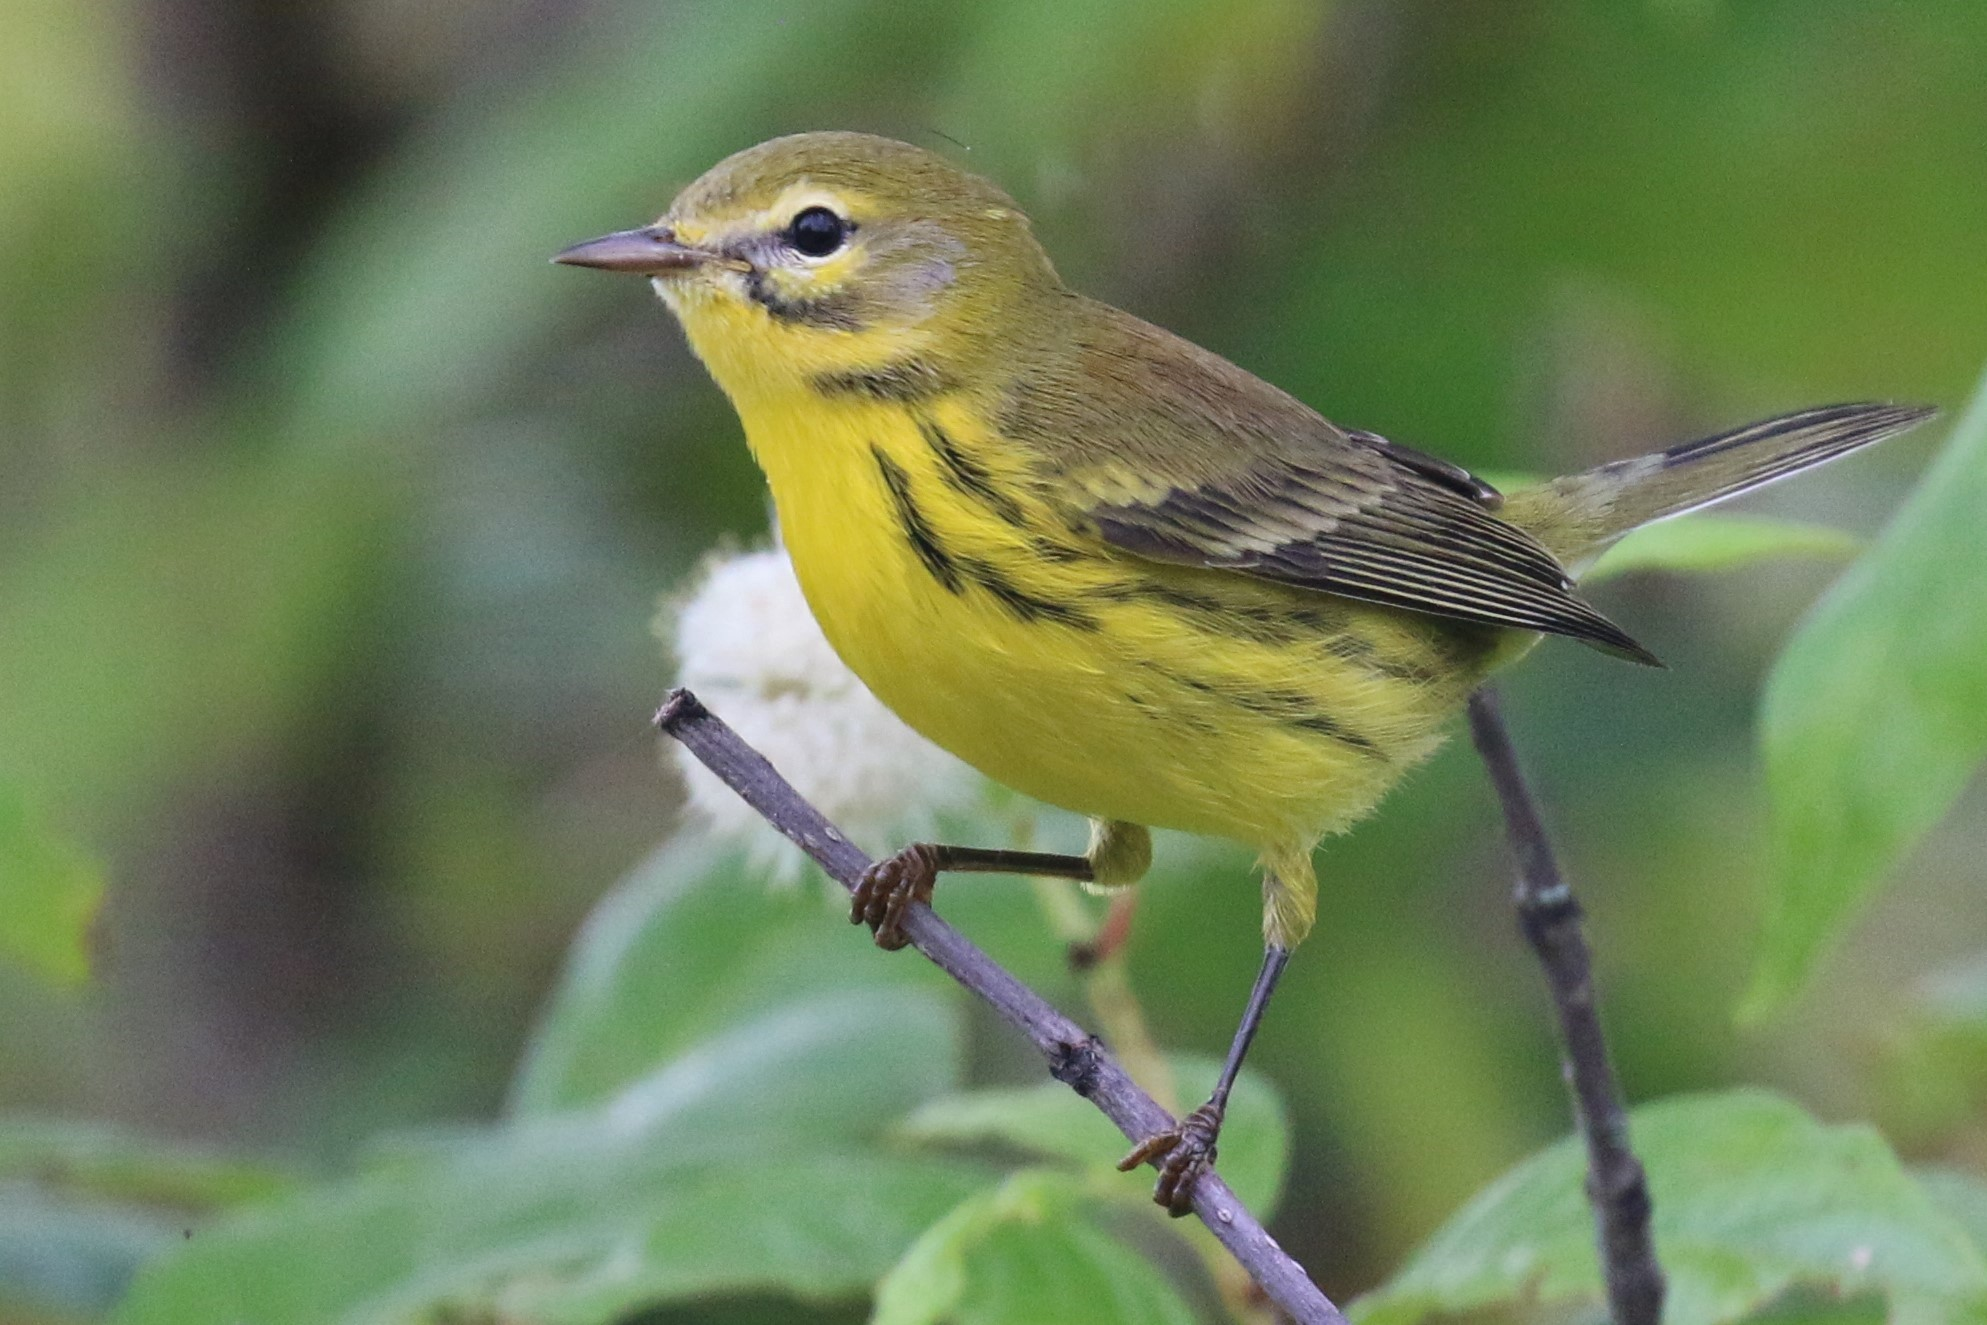 Prairie warbler perched on a branch